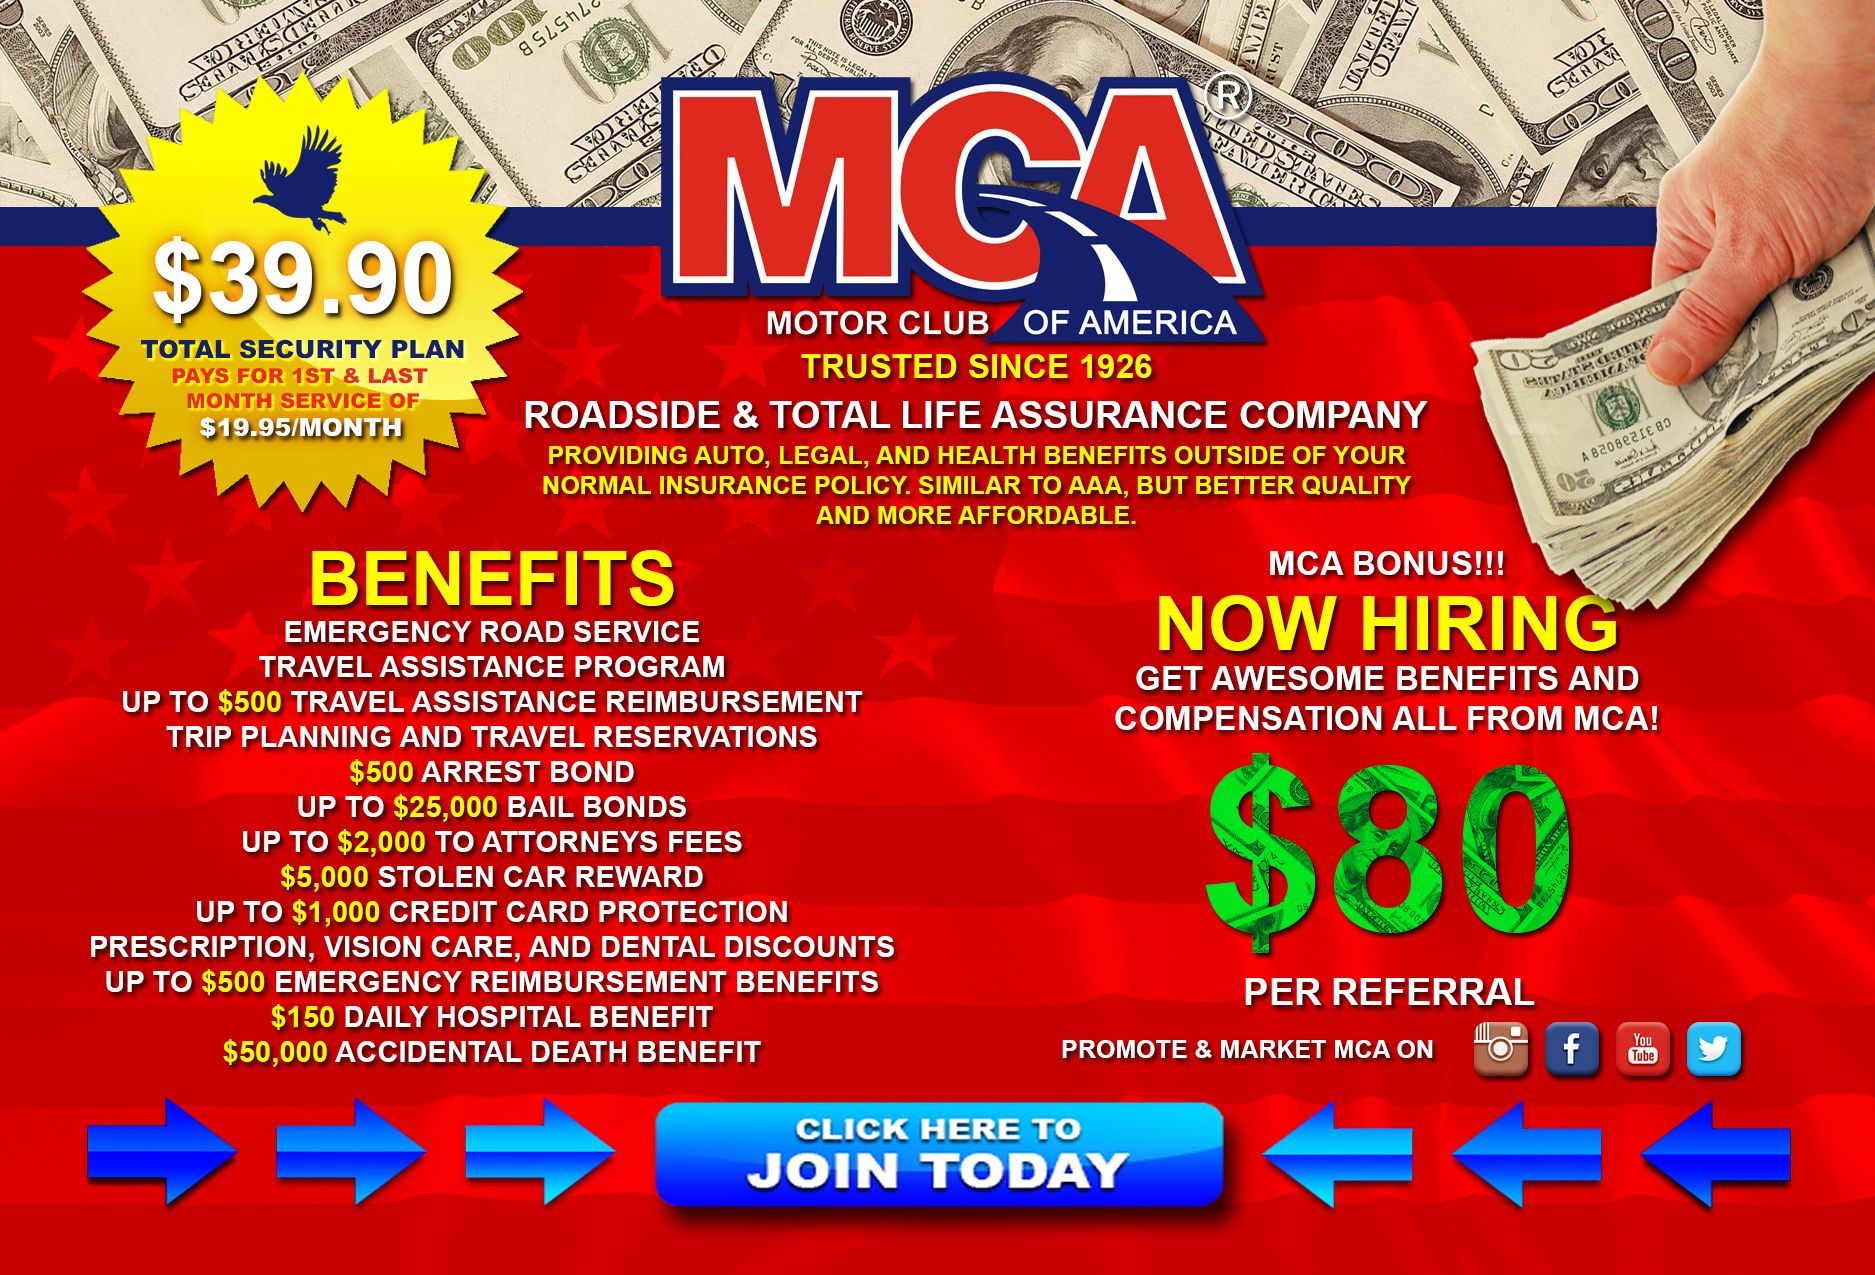 About mca motor club of americahas 24 7 roadside Motor club of america careers